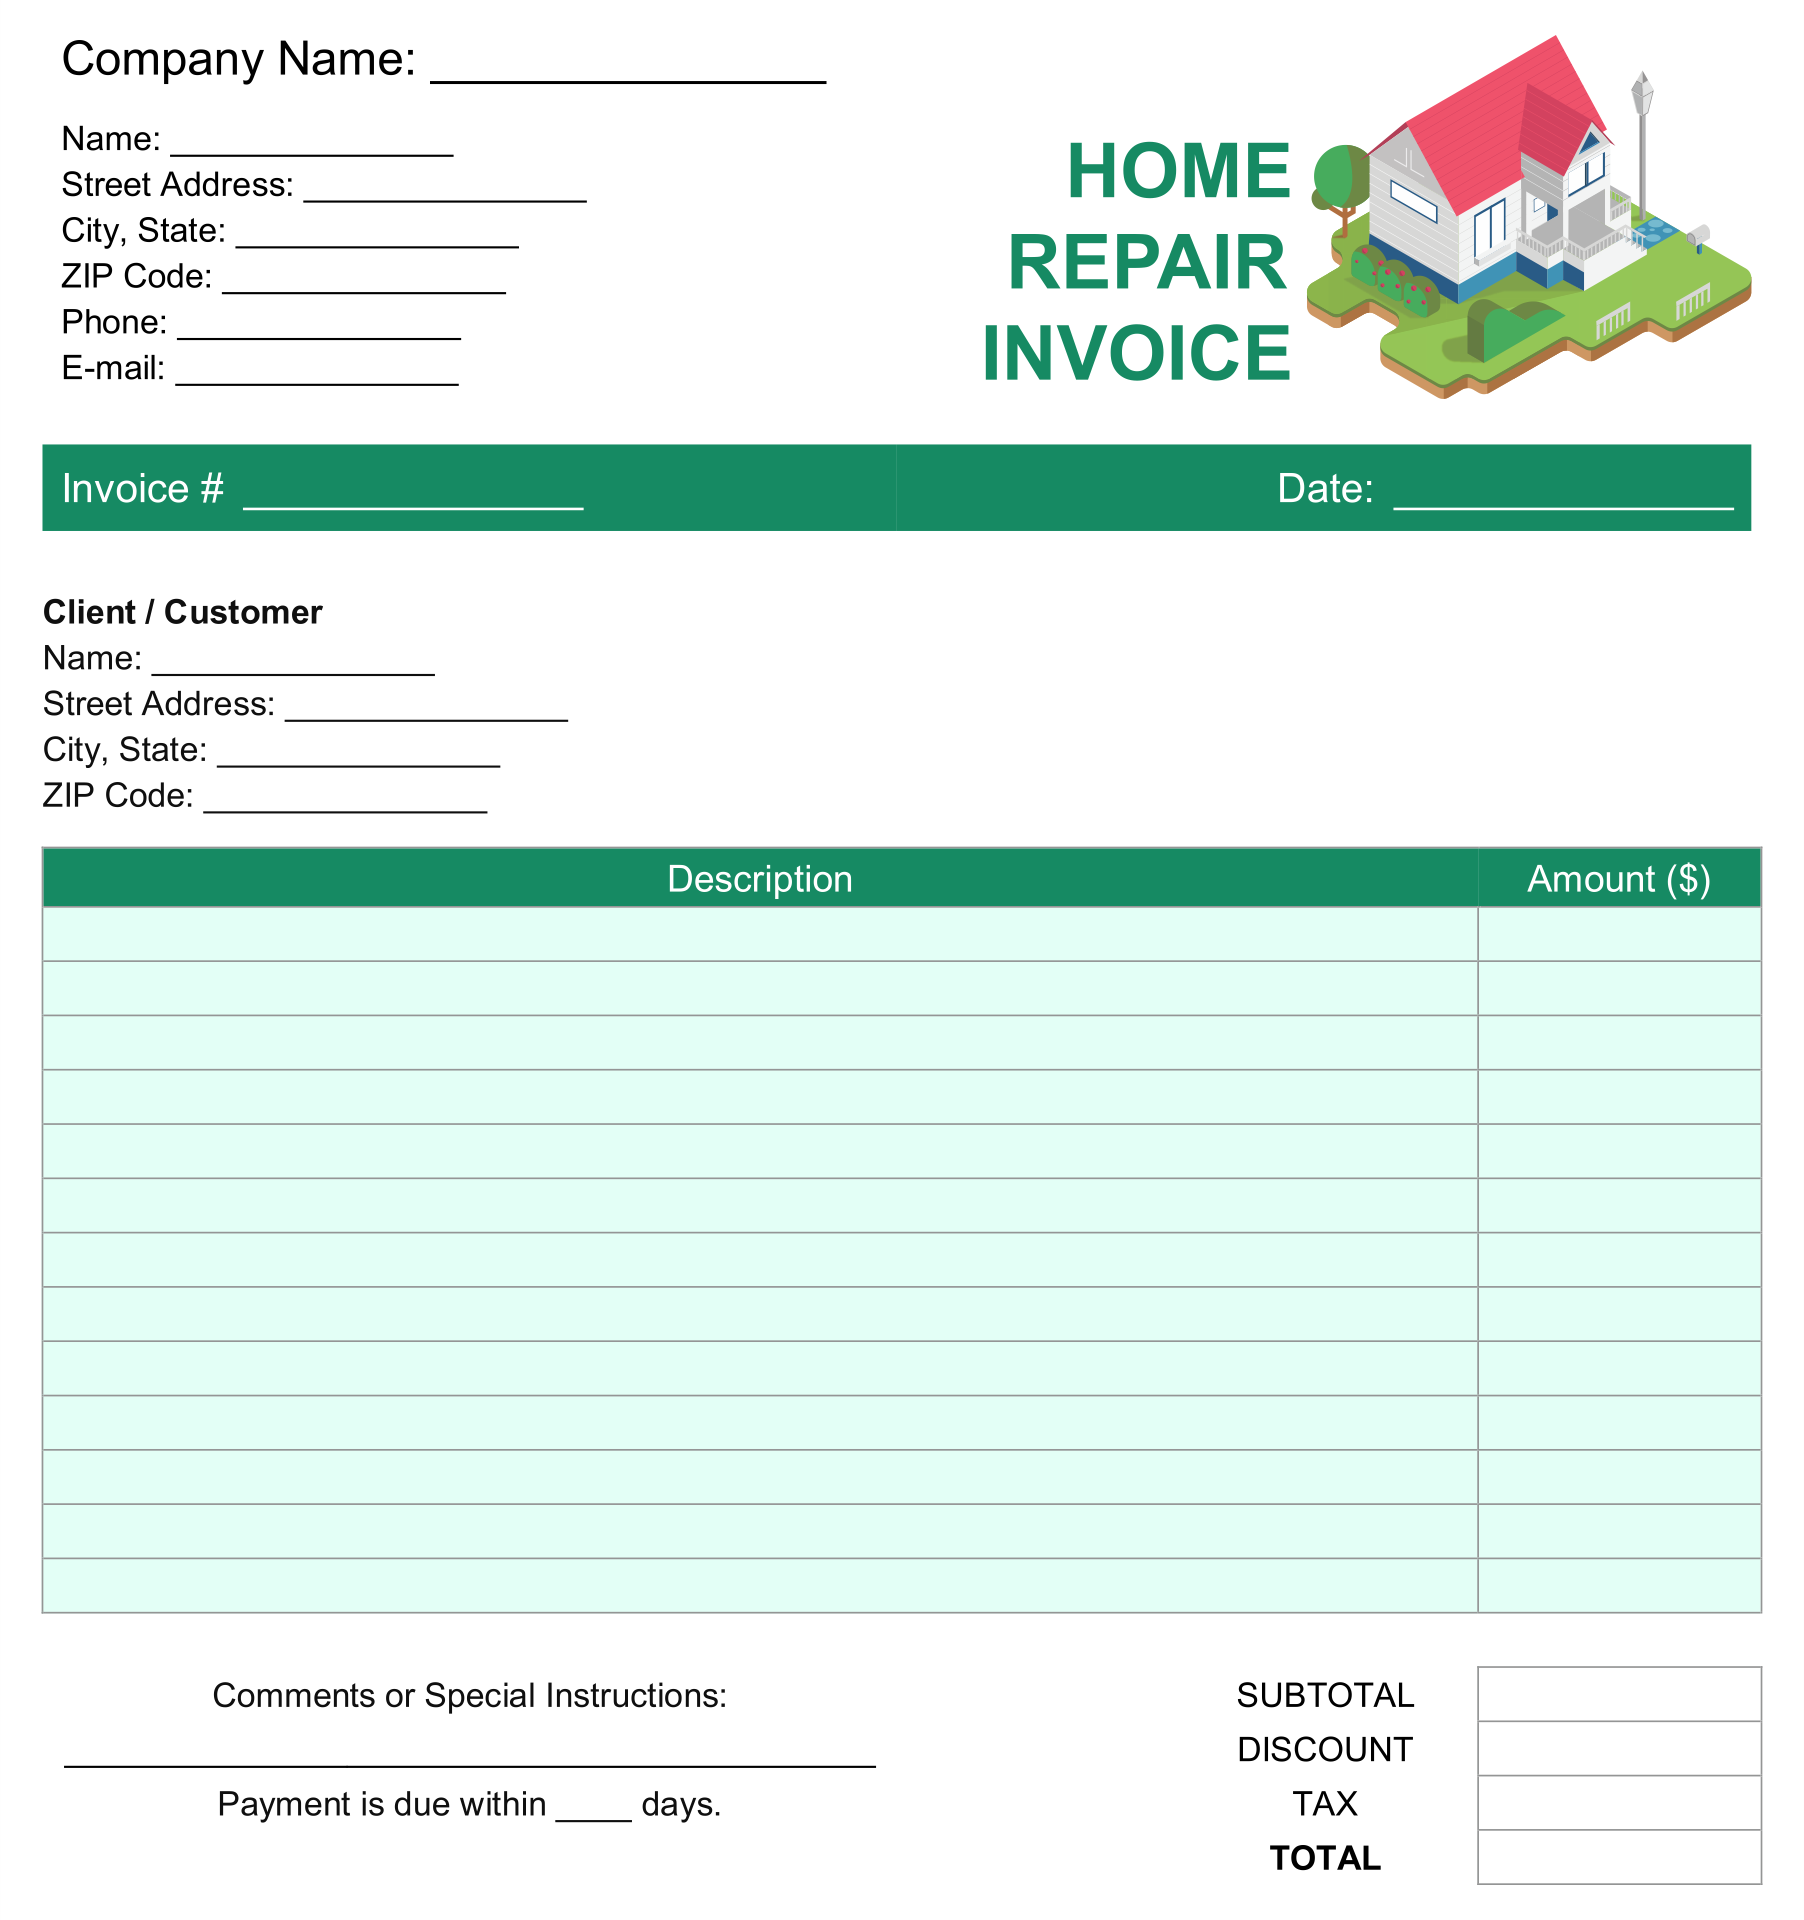 Free Roofing Estimate Template from www.printablee.com